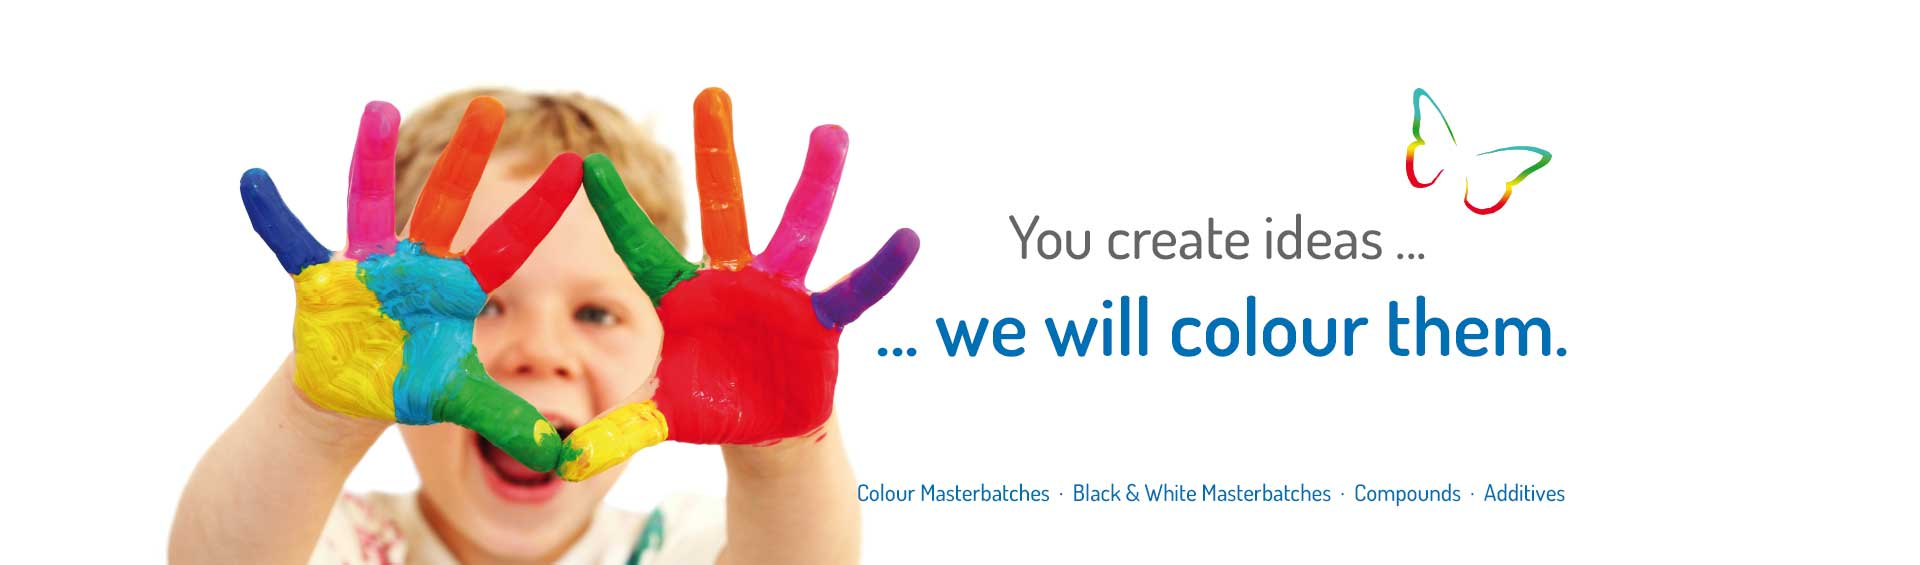 You create ideas ... we will colour them.